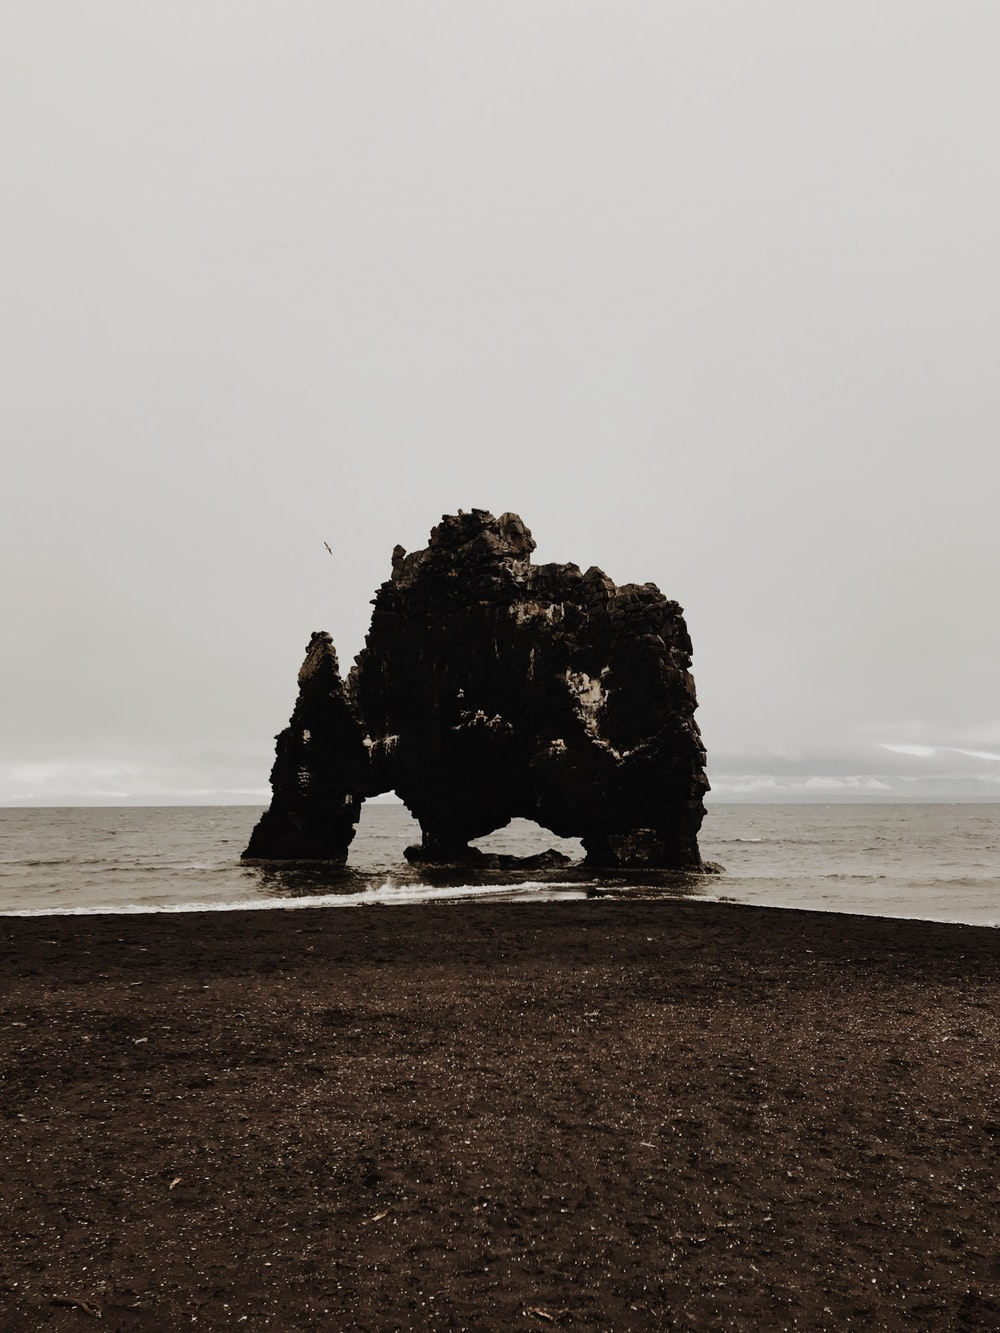 rock formation by the seashore during daytime